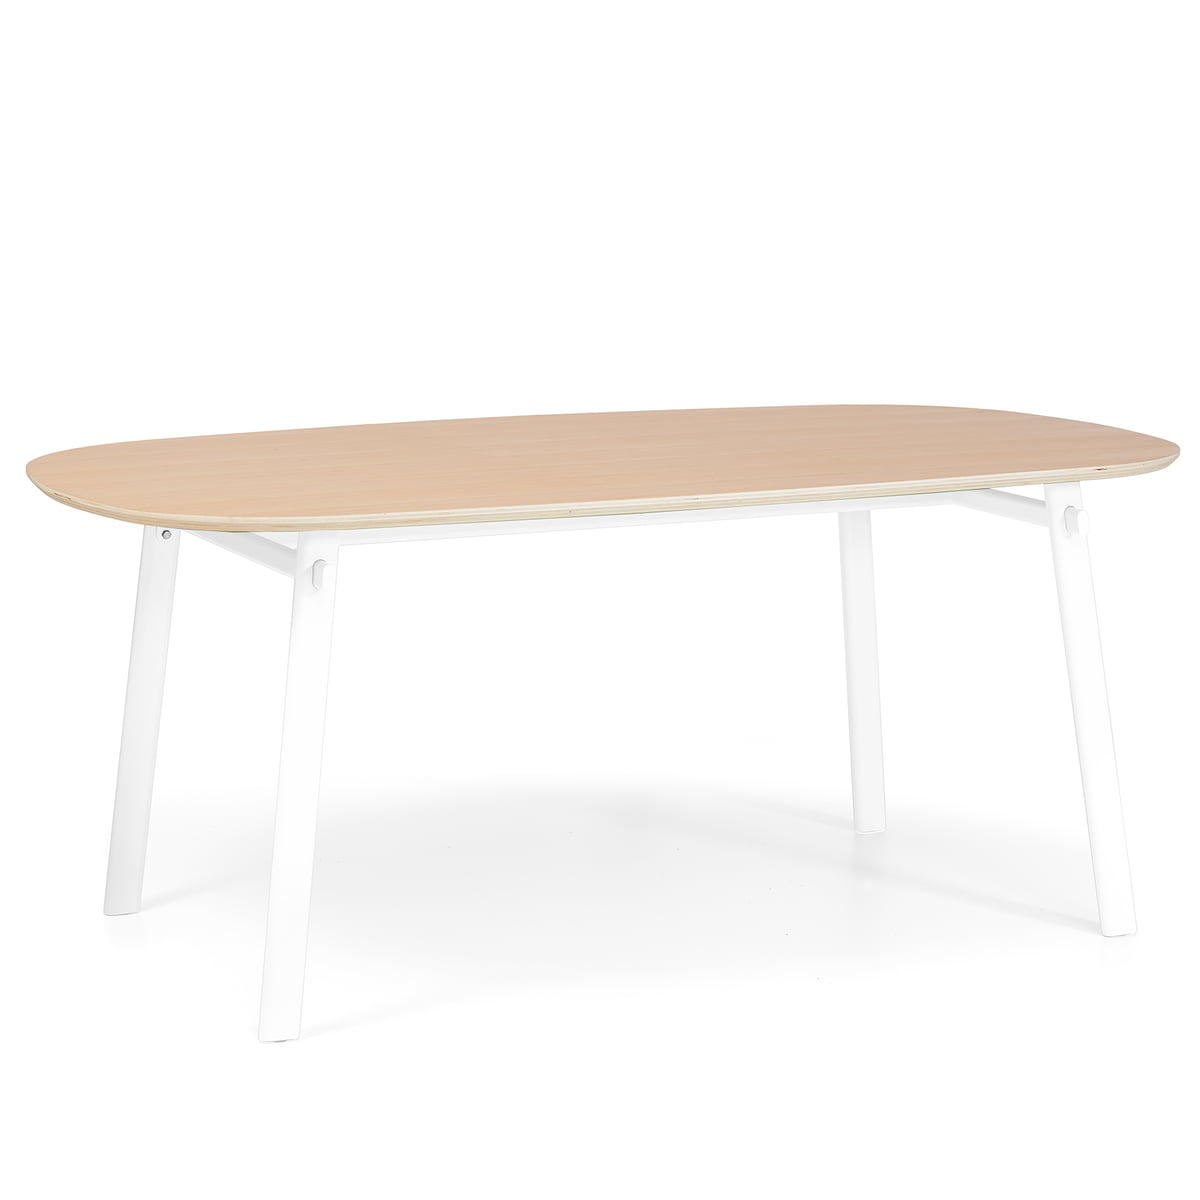 Table de salle manger c leste de hart for Table de salle a manger 220 cm